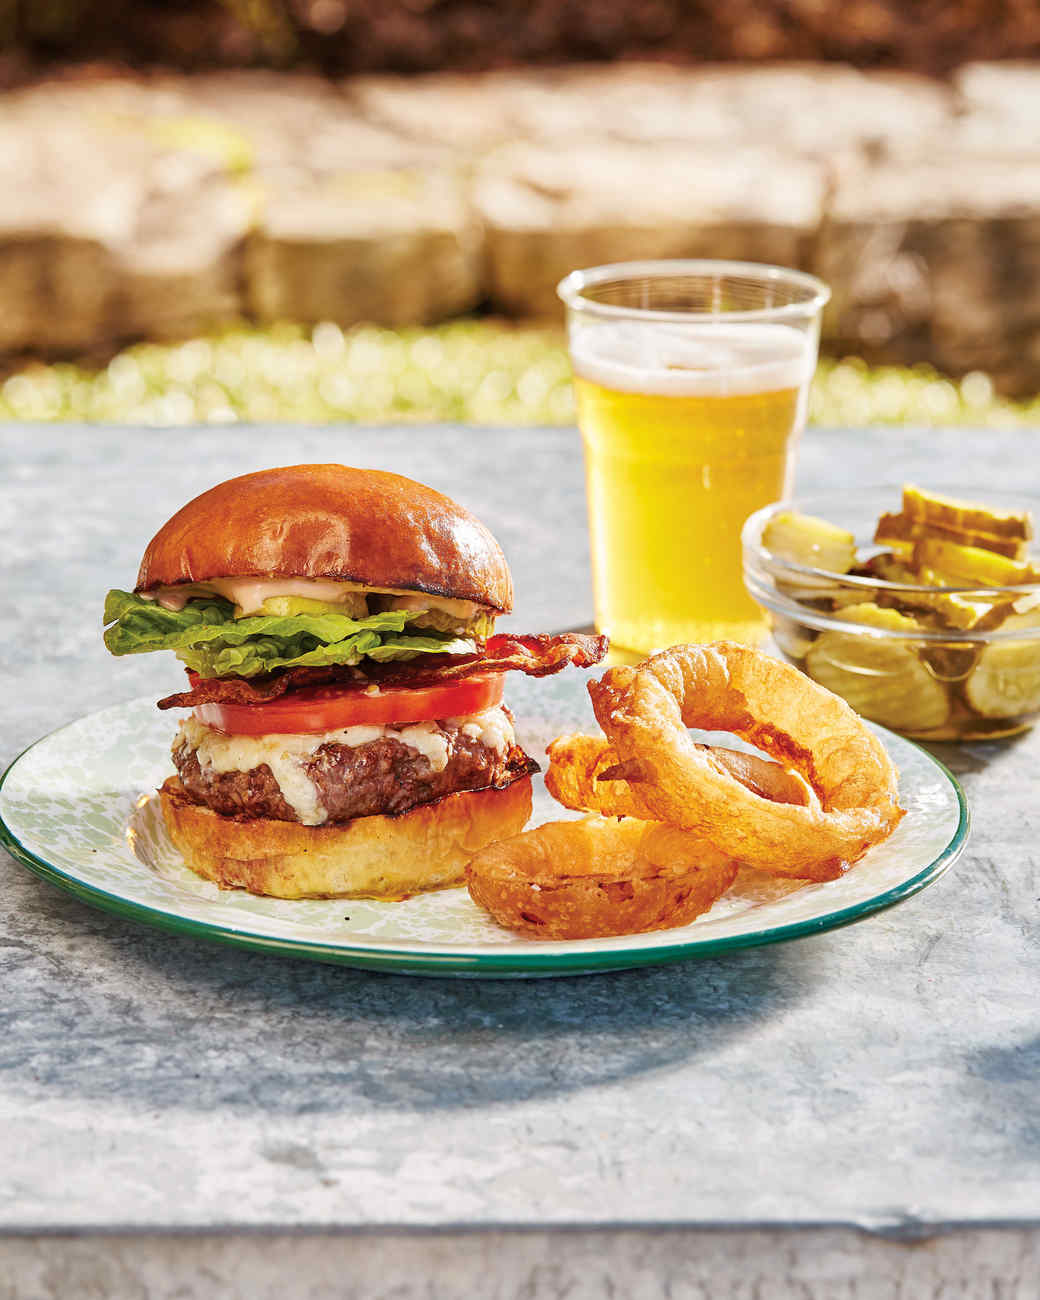 Aged-Cheddar-and-Swiss Cheeseburgers